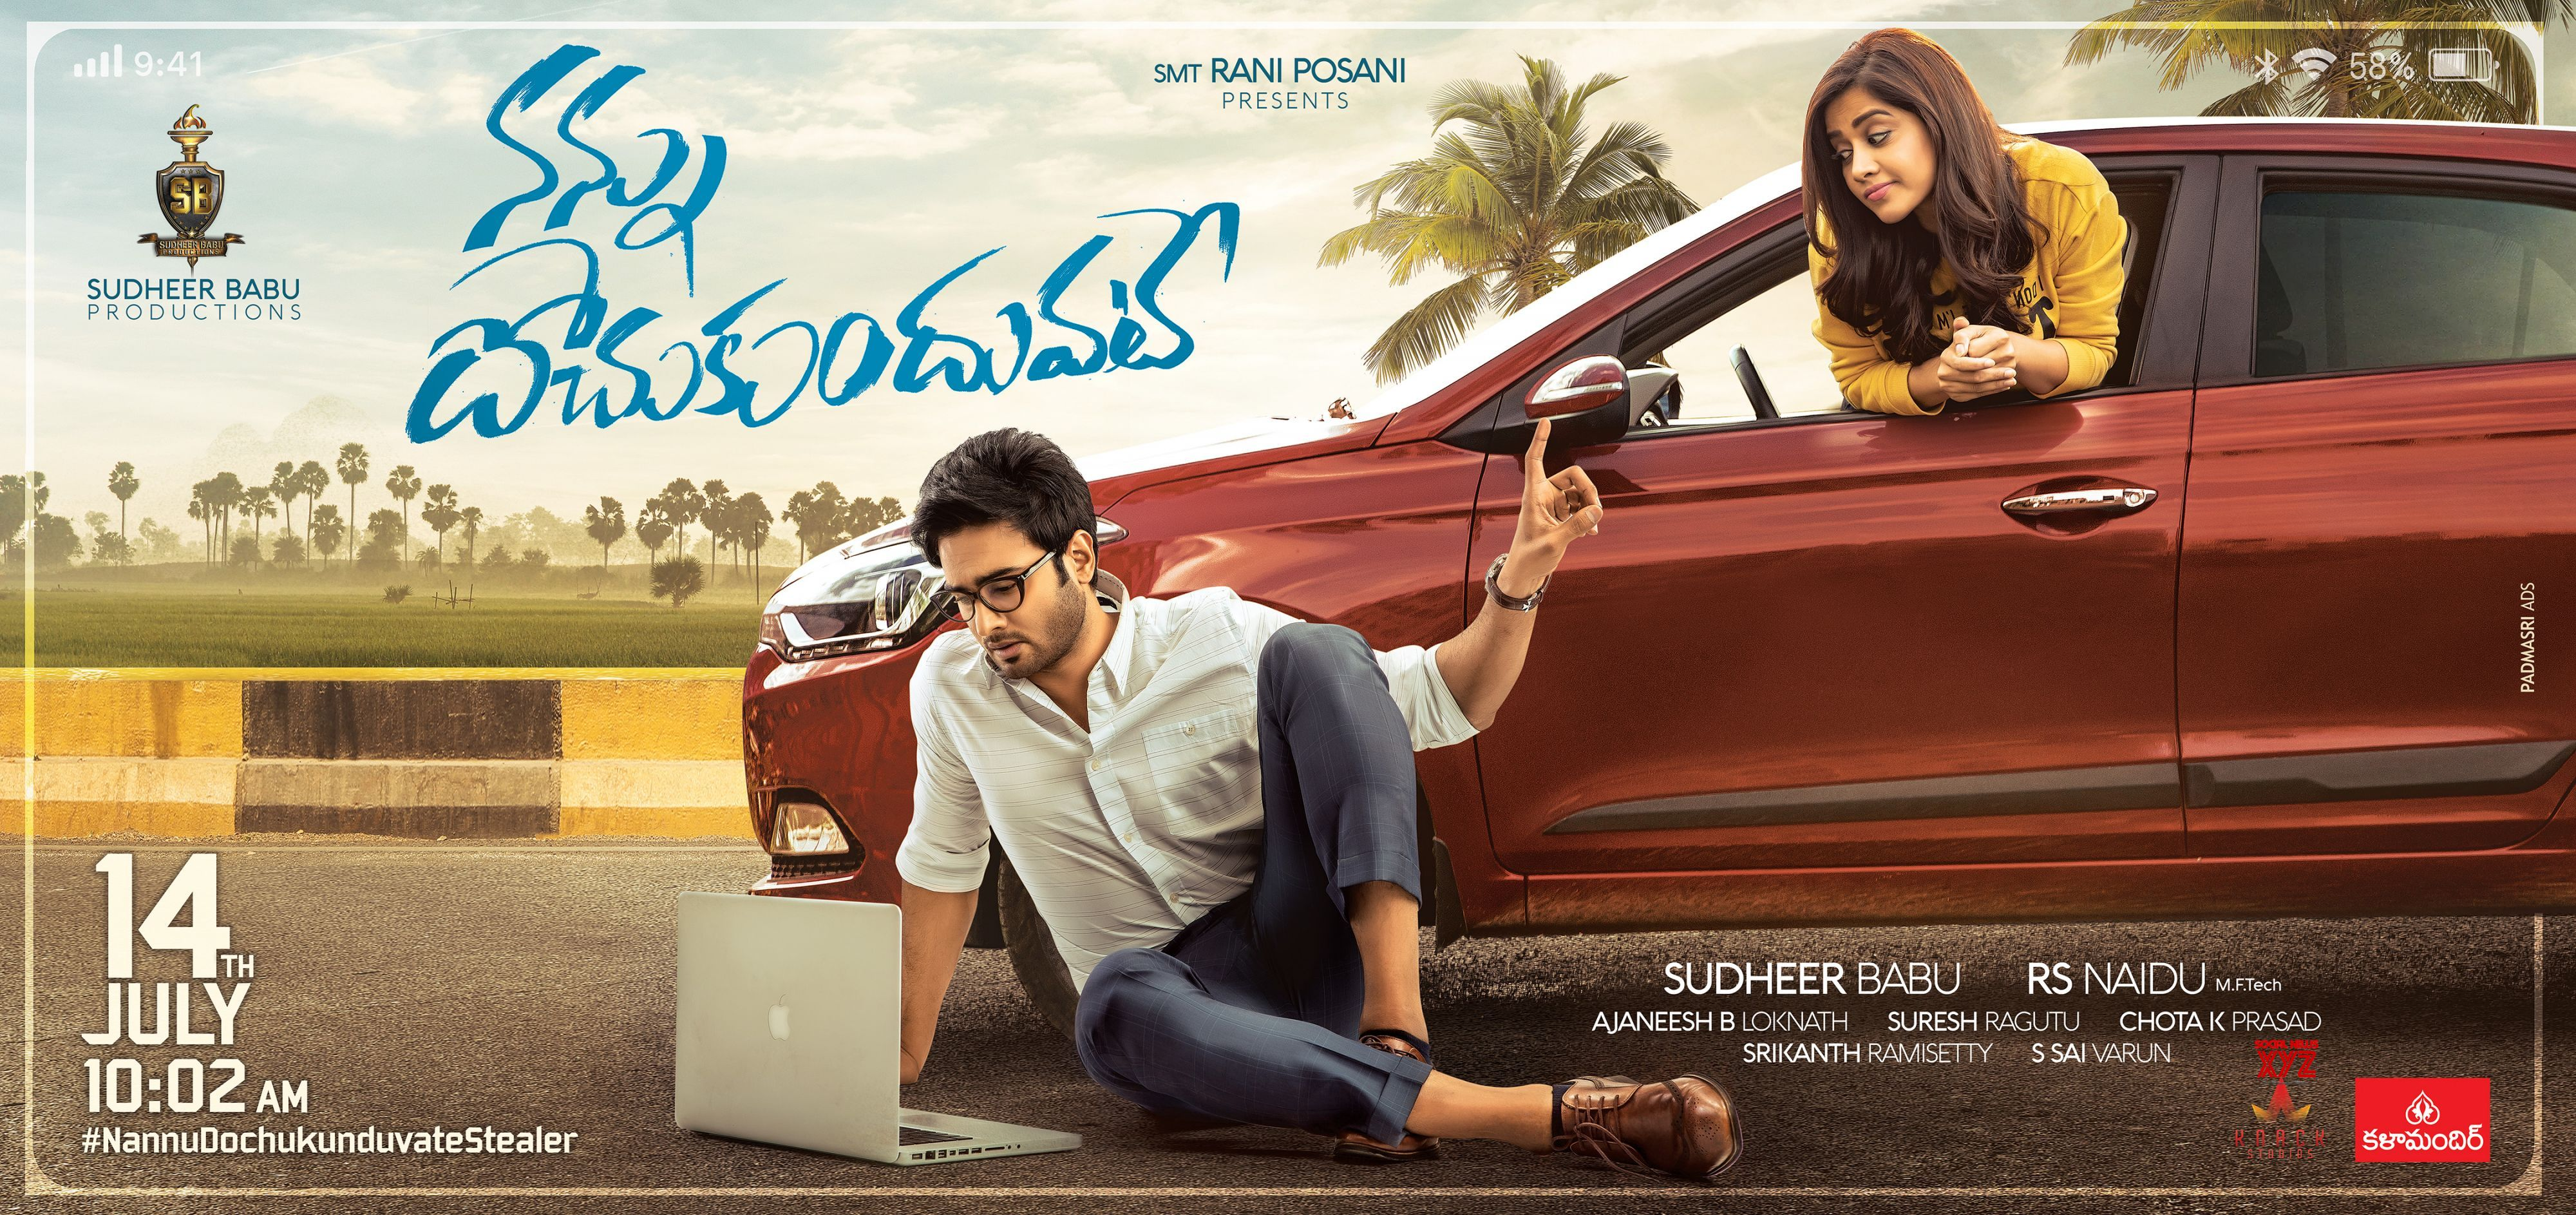 Sudheer Babu's Nannu Dochukunduvate movie teaser will be released on July 14th